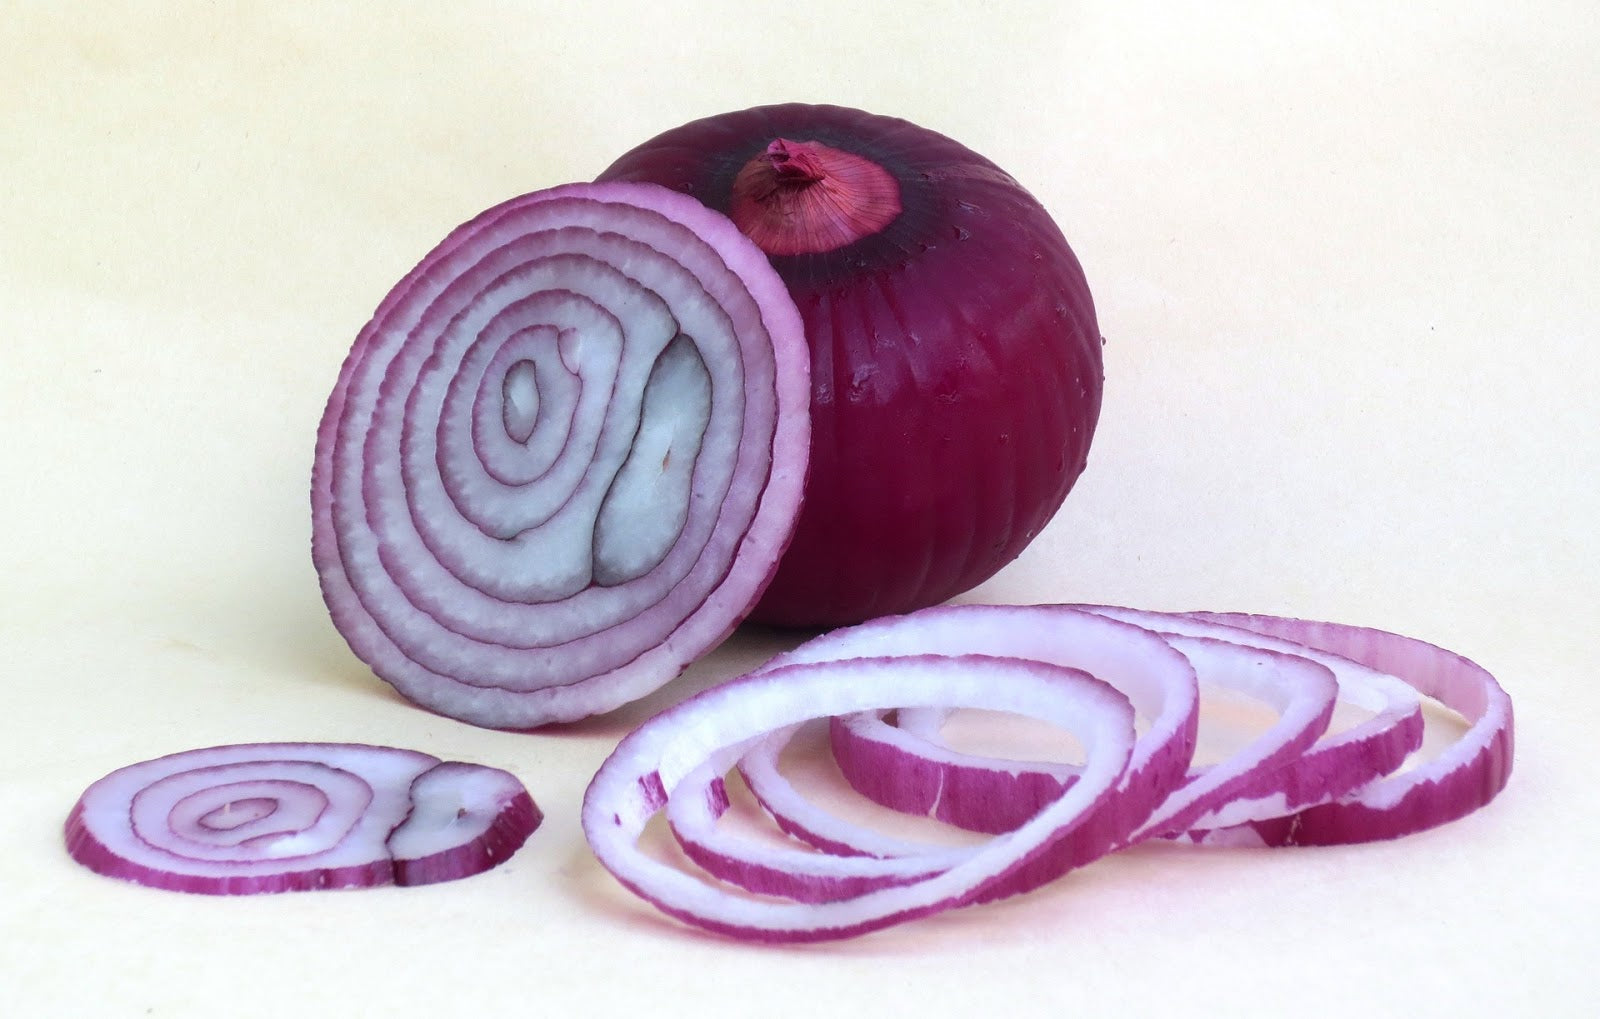 Onion - Ayurvedic medicine for Varicose Veins